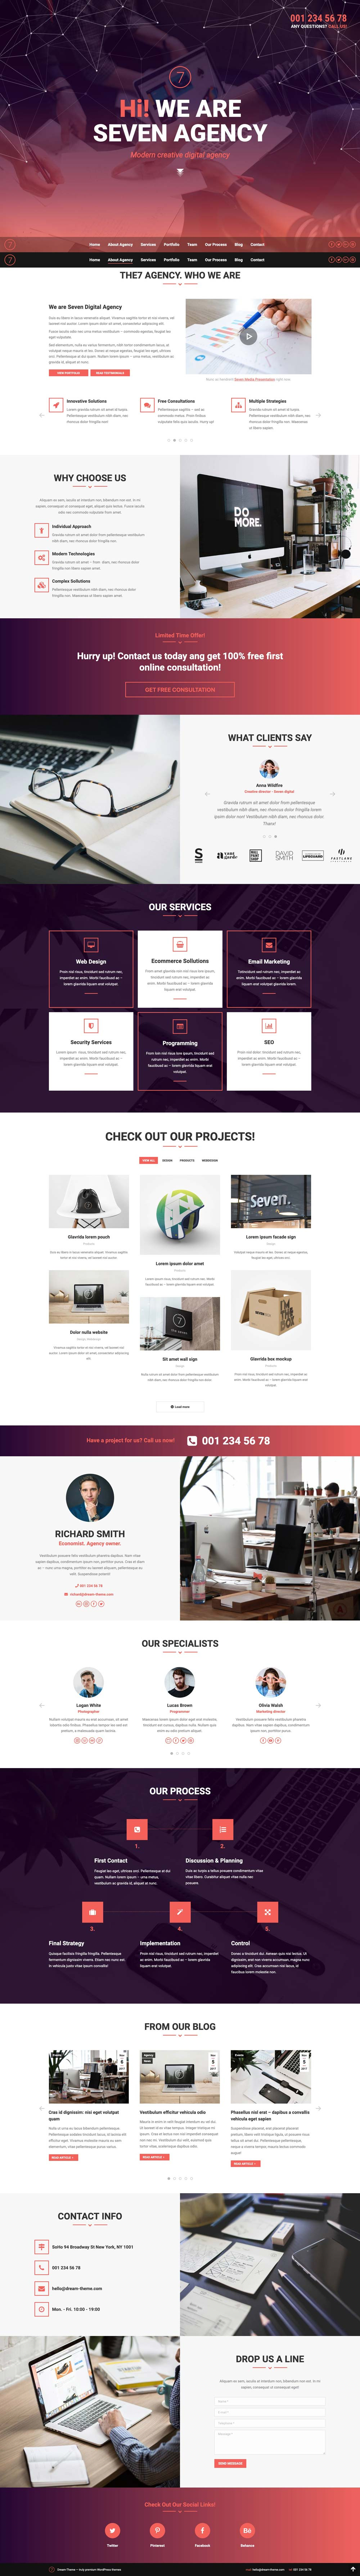 onepage-personal-template-sample-design4